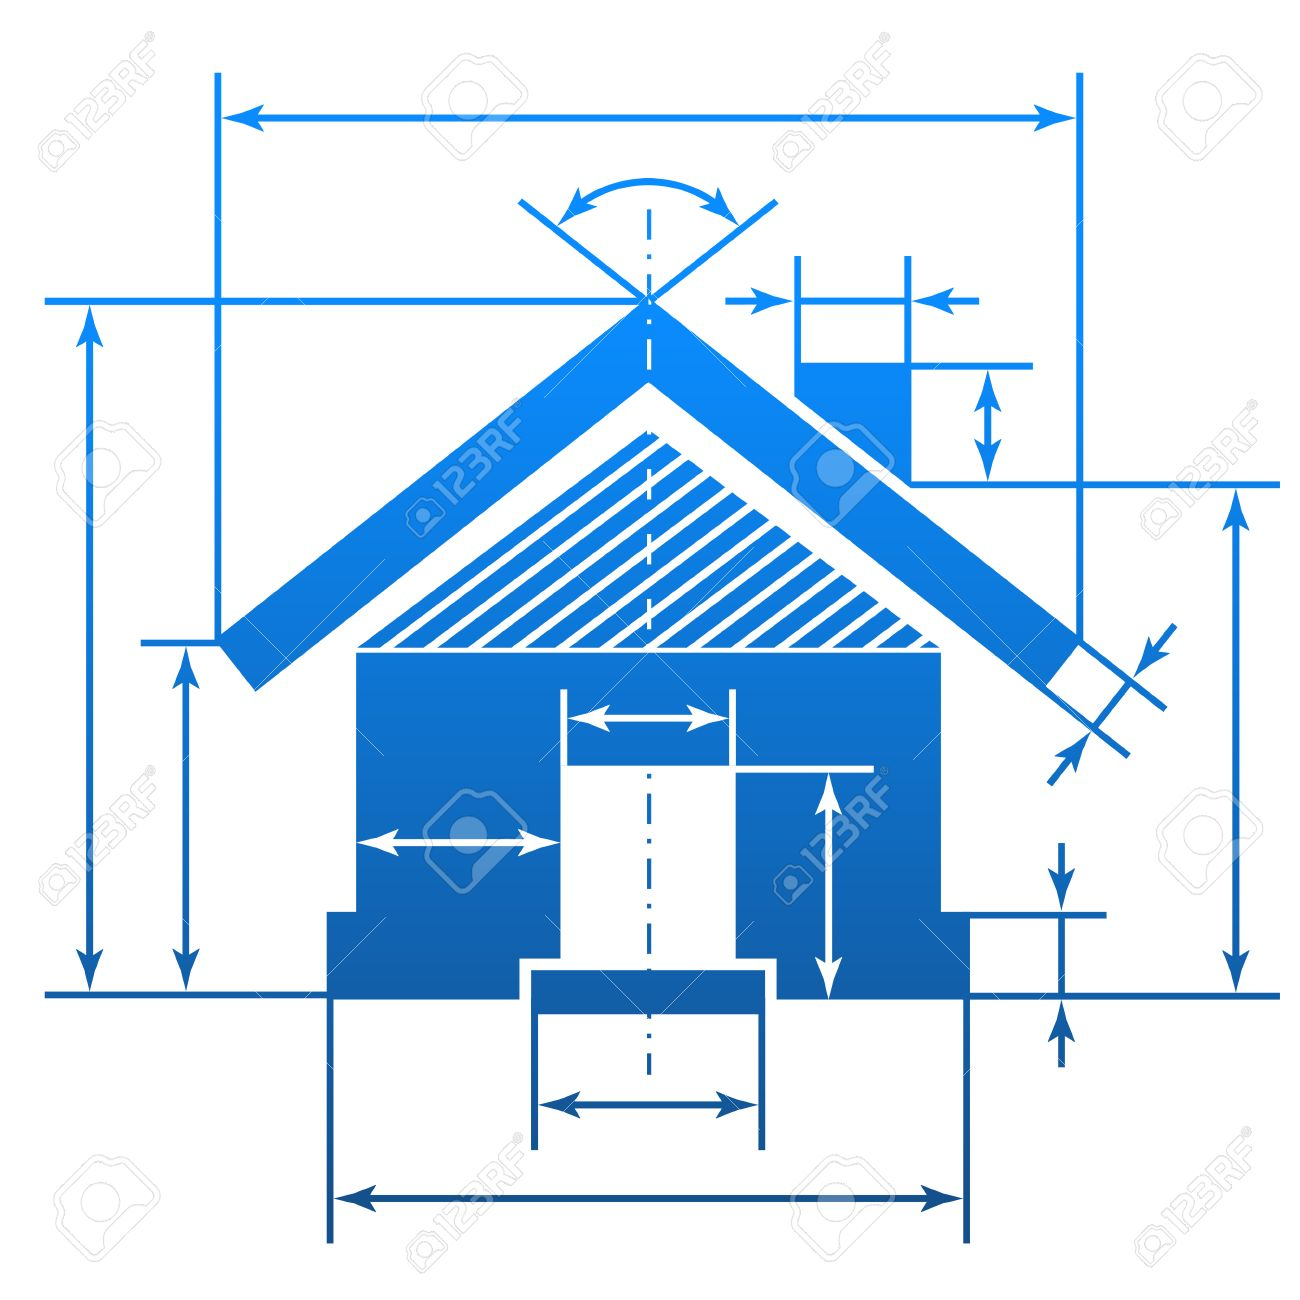 Home Symbol With Dimension Lines Element Of Blueprint Drawing In Shape House Sign Qualitative Vector